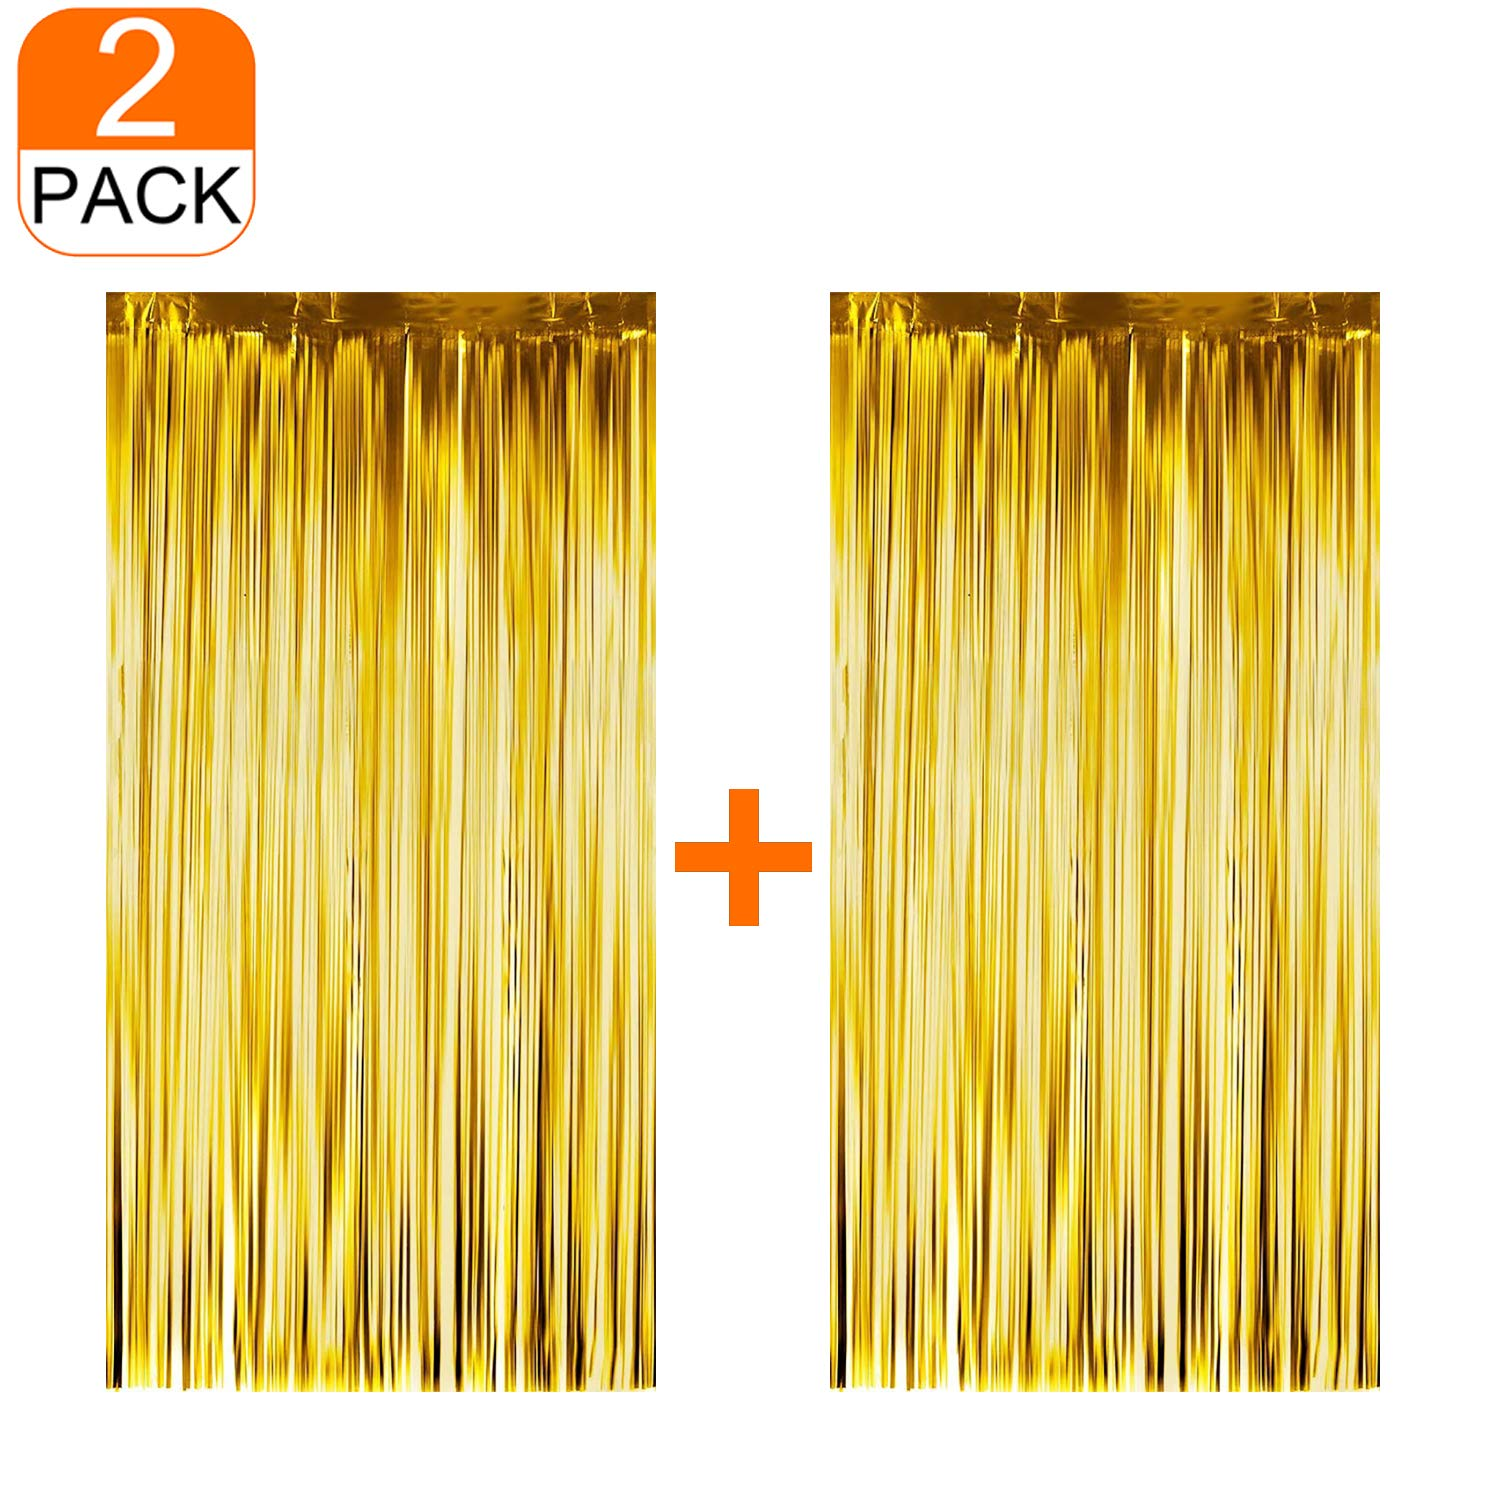 2 Pcs Backdrop Curtain/Gold Tinsel Foil Fringe Curtains (3ft x 6.5ft) for Party Photo Backdrop,for Wedding/Birthday/Decor